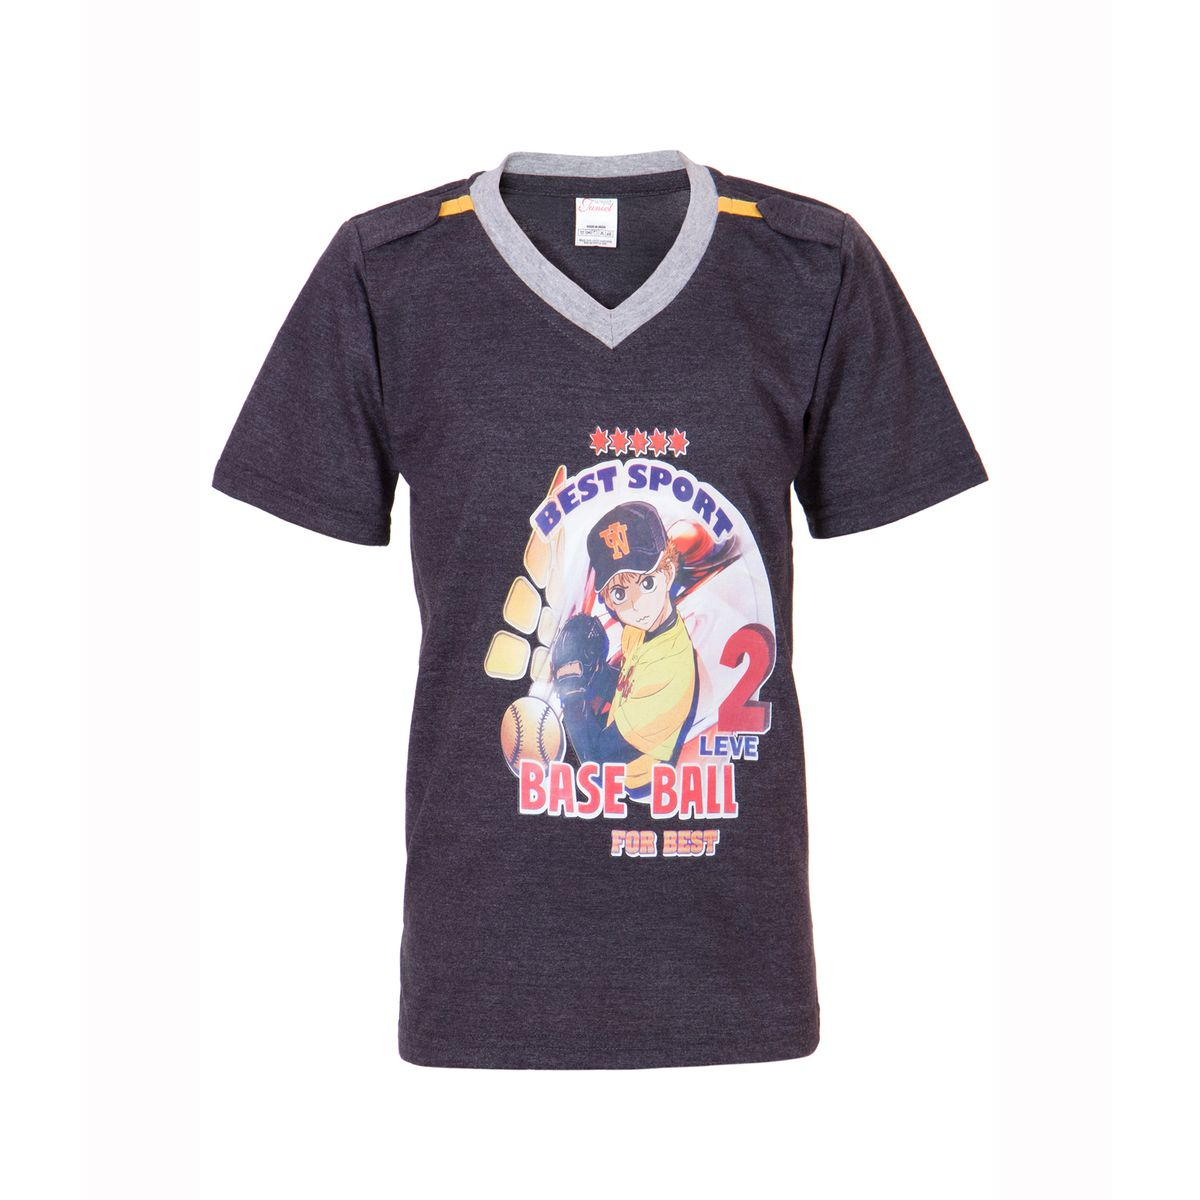 Ultrafit Junior Boys Cotton Multicolored T-Shirt- Pack of 2181